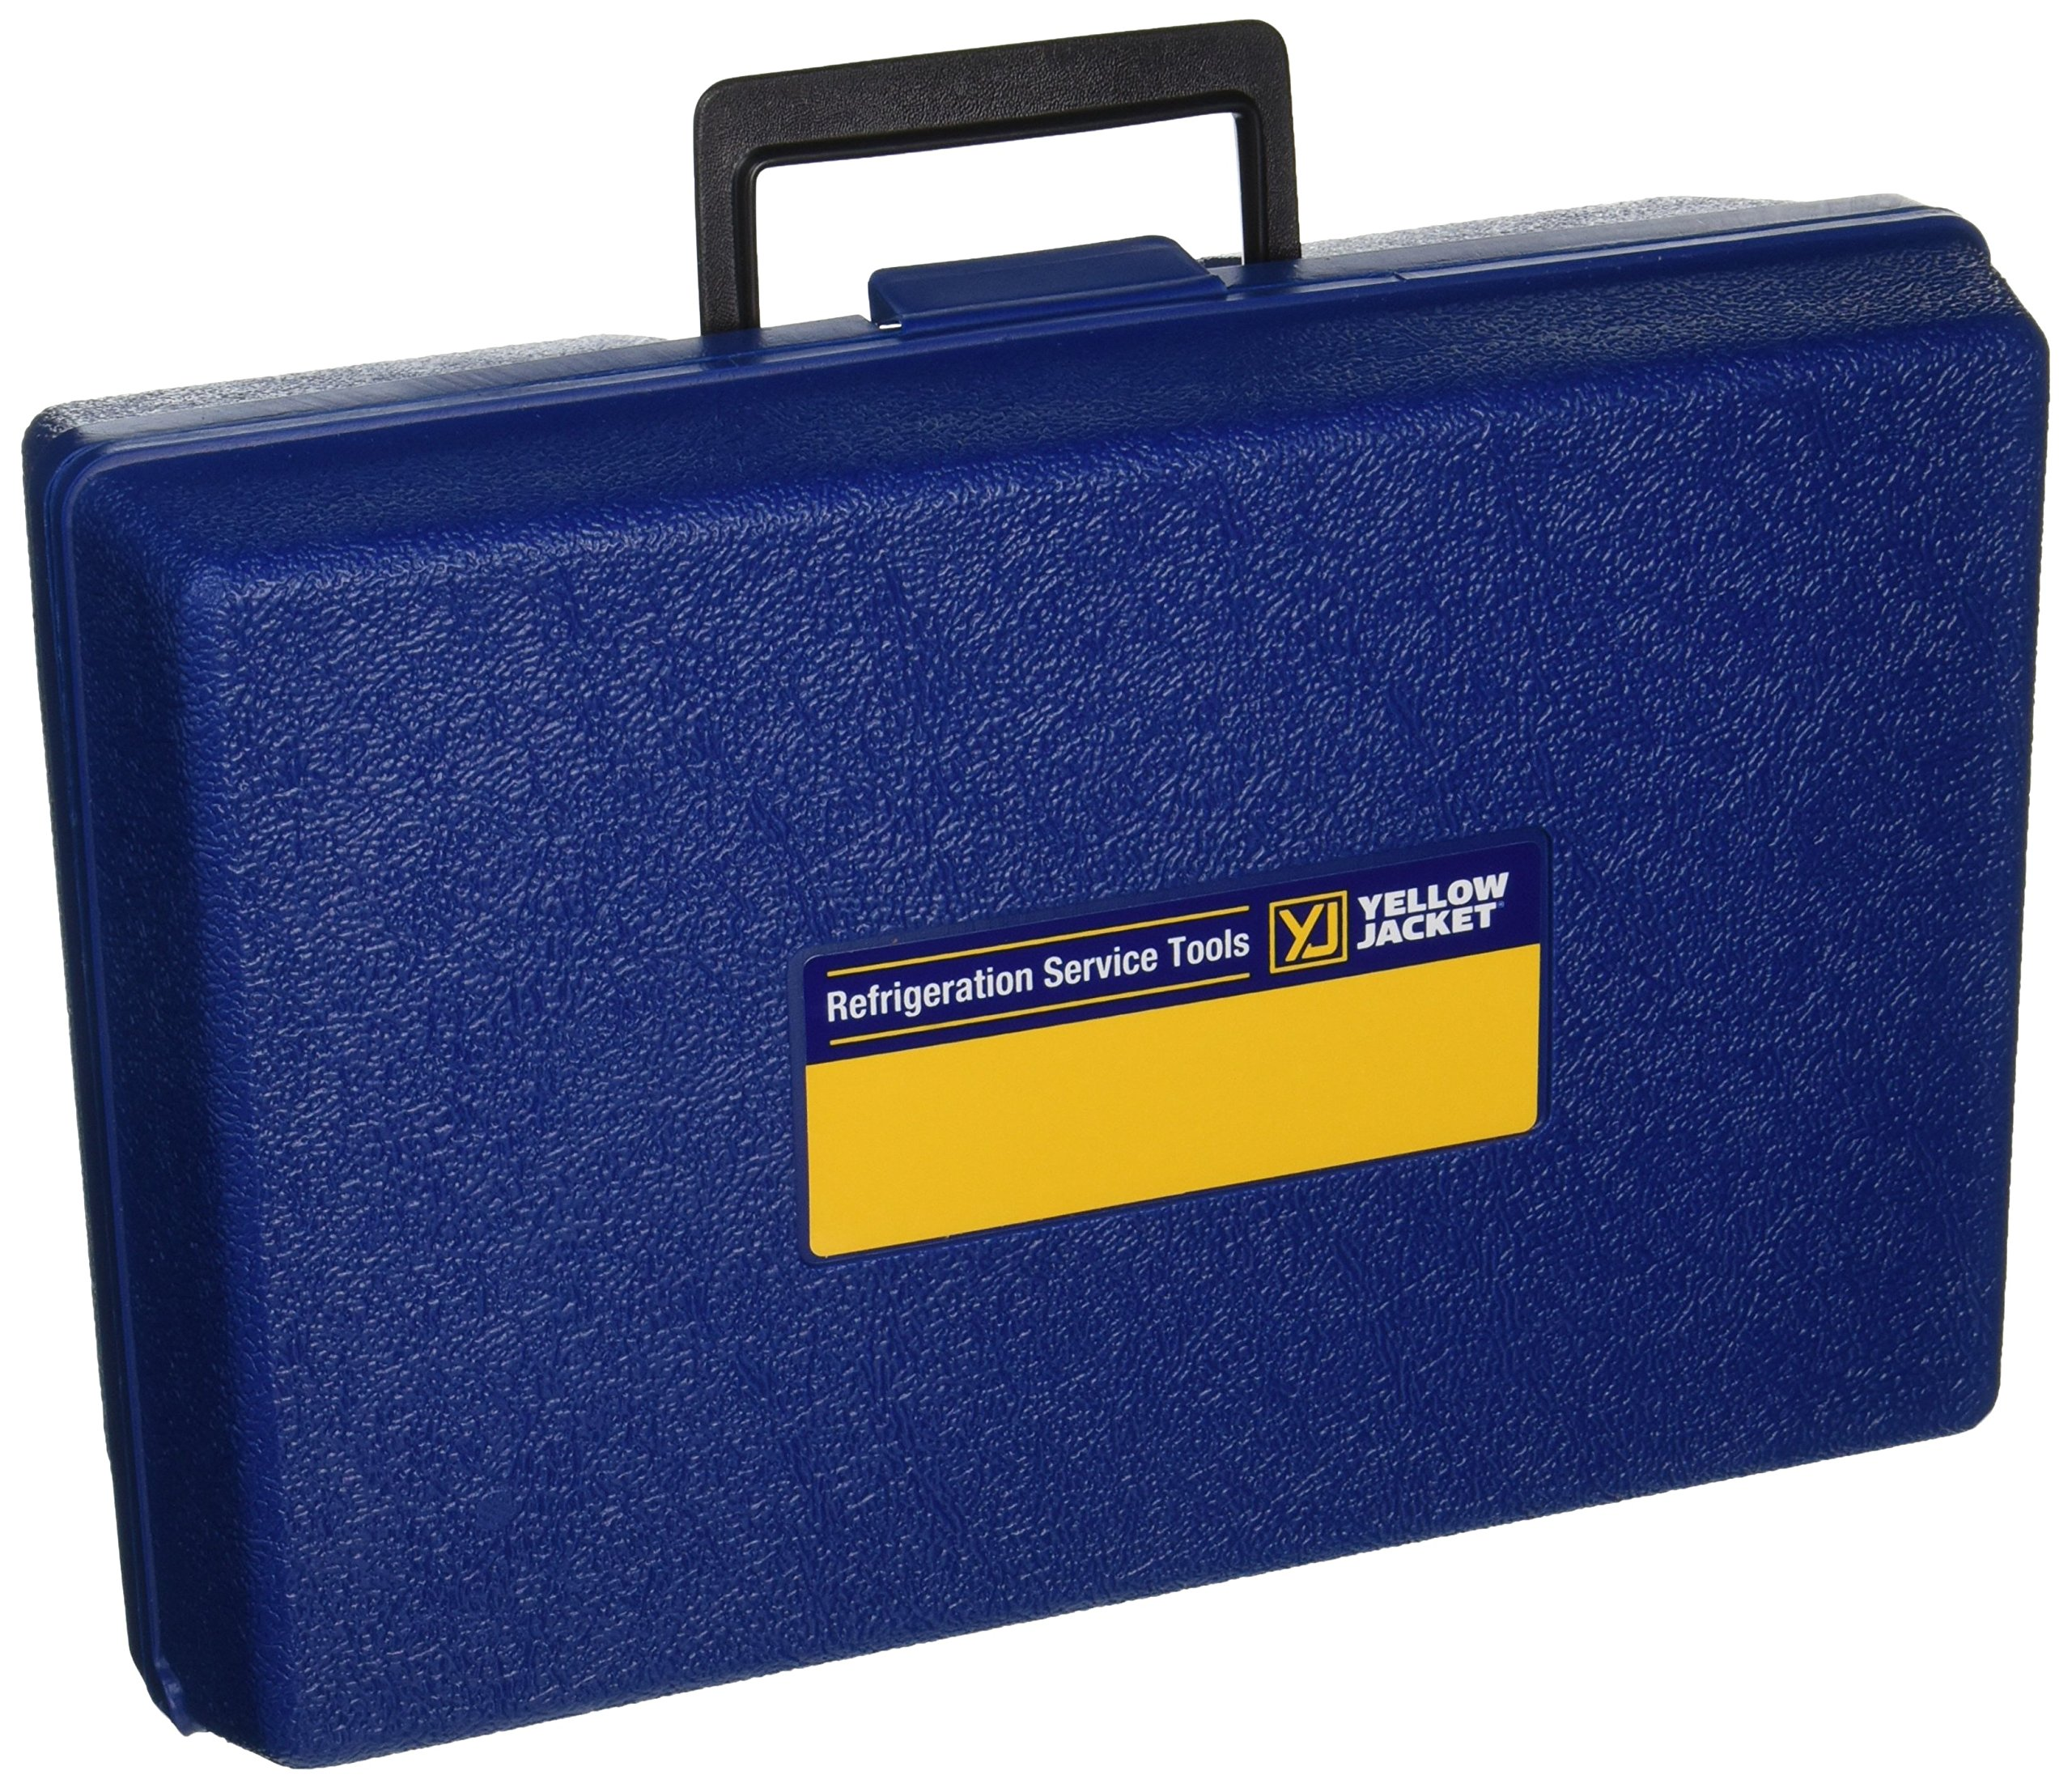 Yellow Jacket 40263 Series 41 Manifold Carrying Case, 12-1/4'' x 8'' x 4-1/4'', Blue